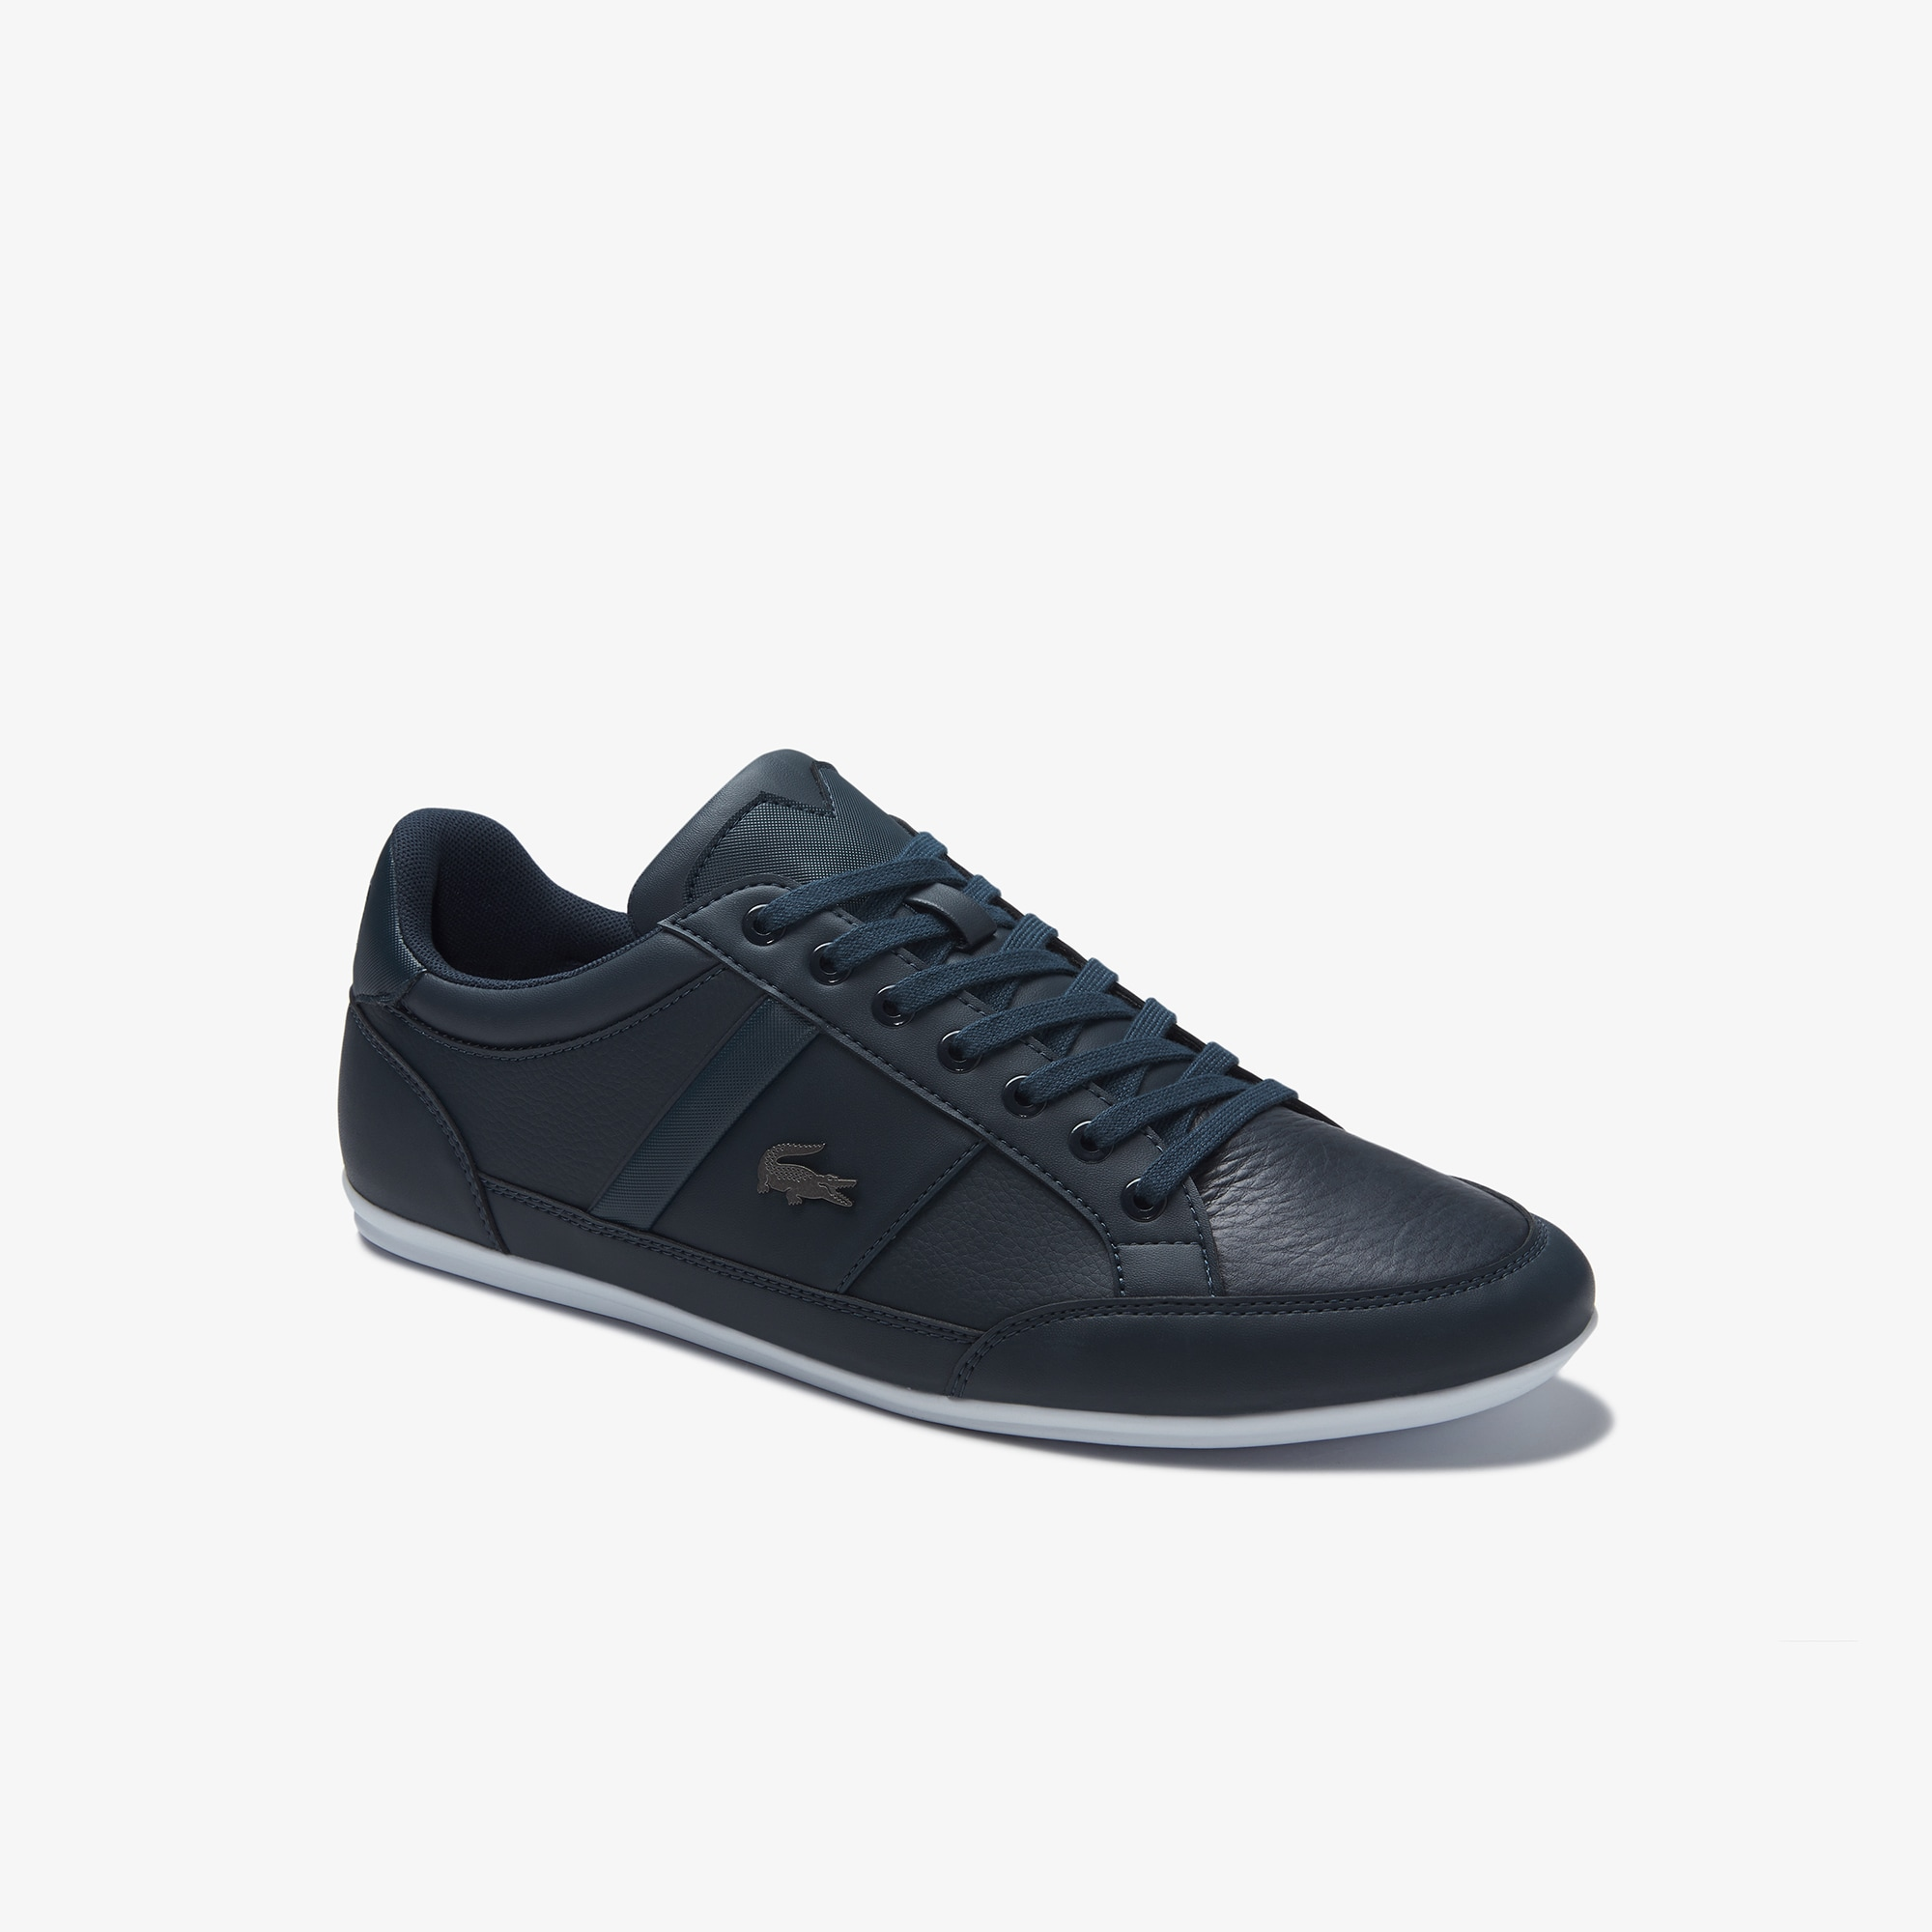 Lacoste Mens Chaymon Nappa Leather Sneakers